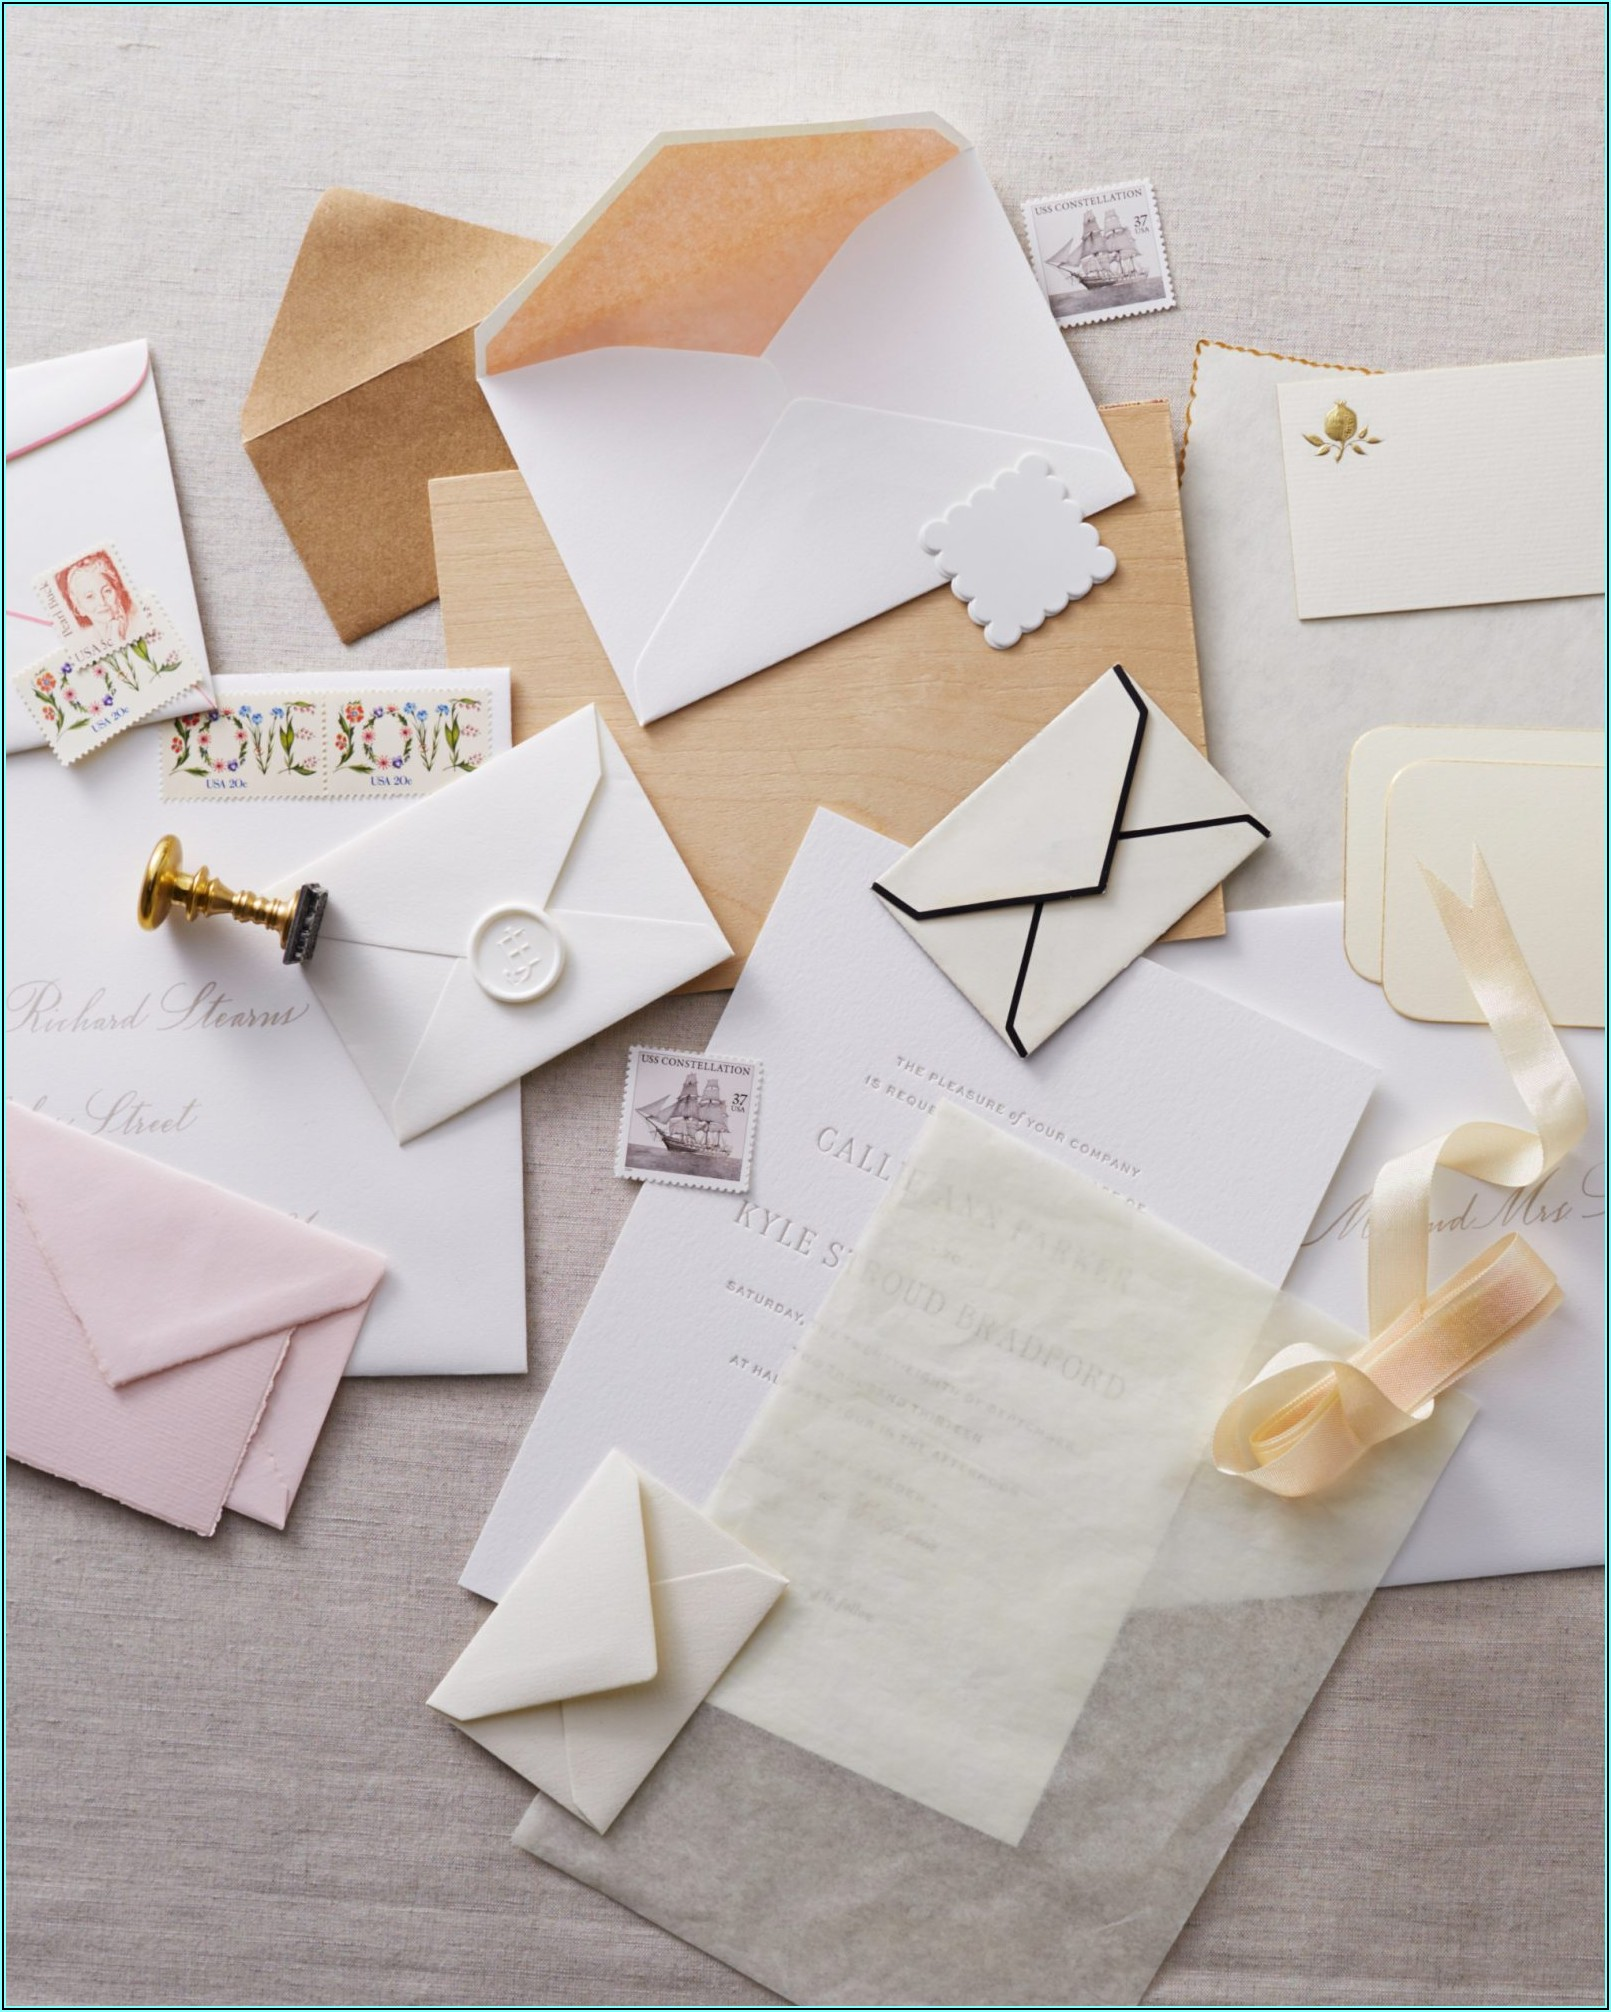 Addressing Wedding Invitations To A Family With No Inner Envelope